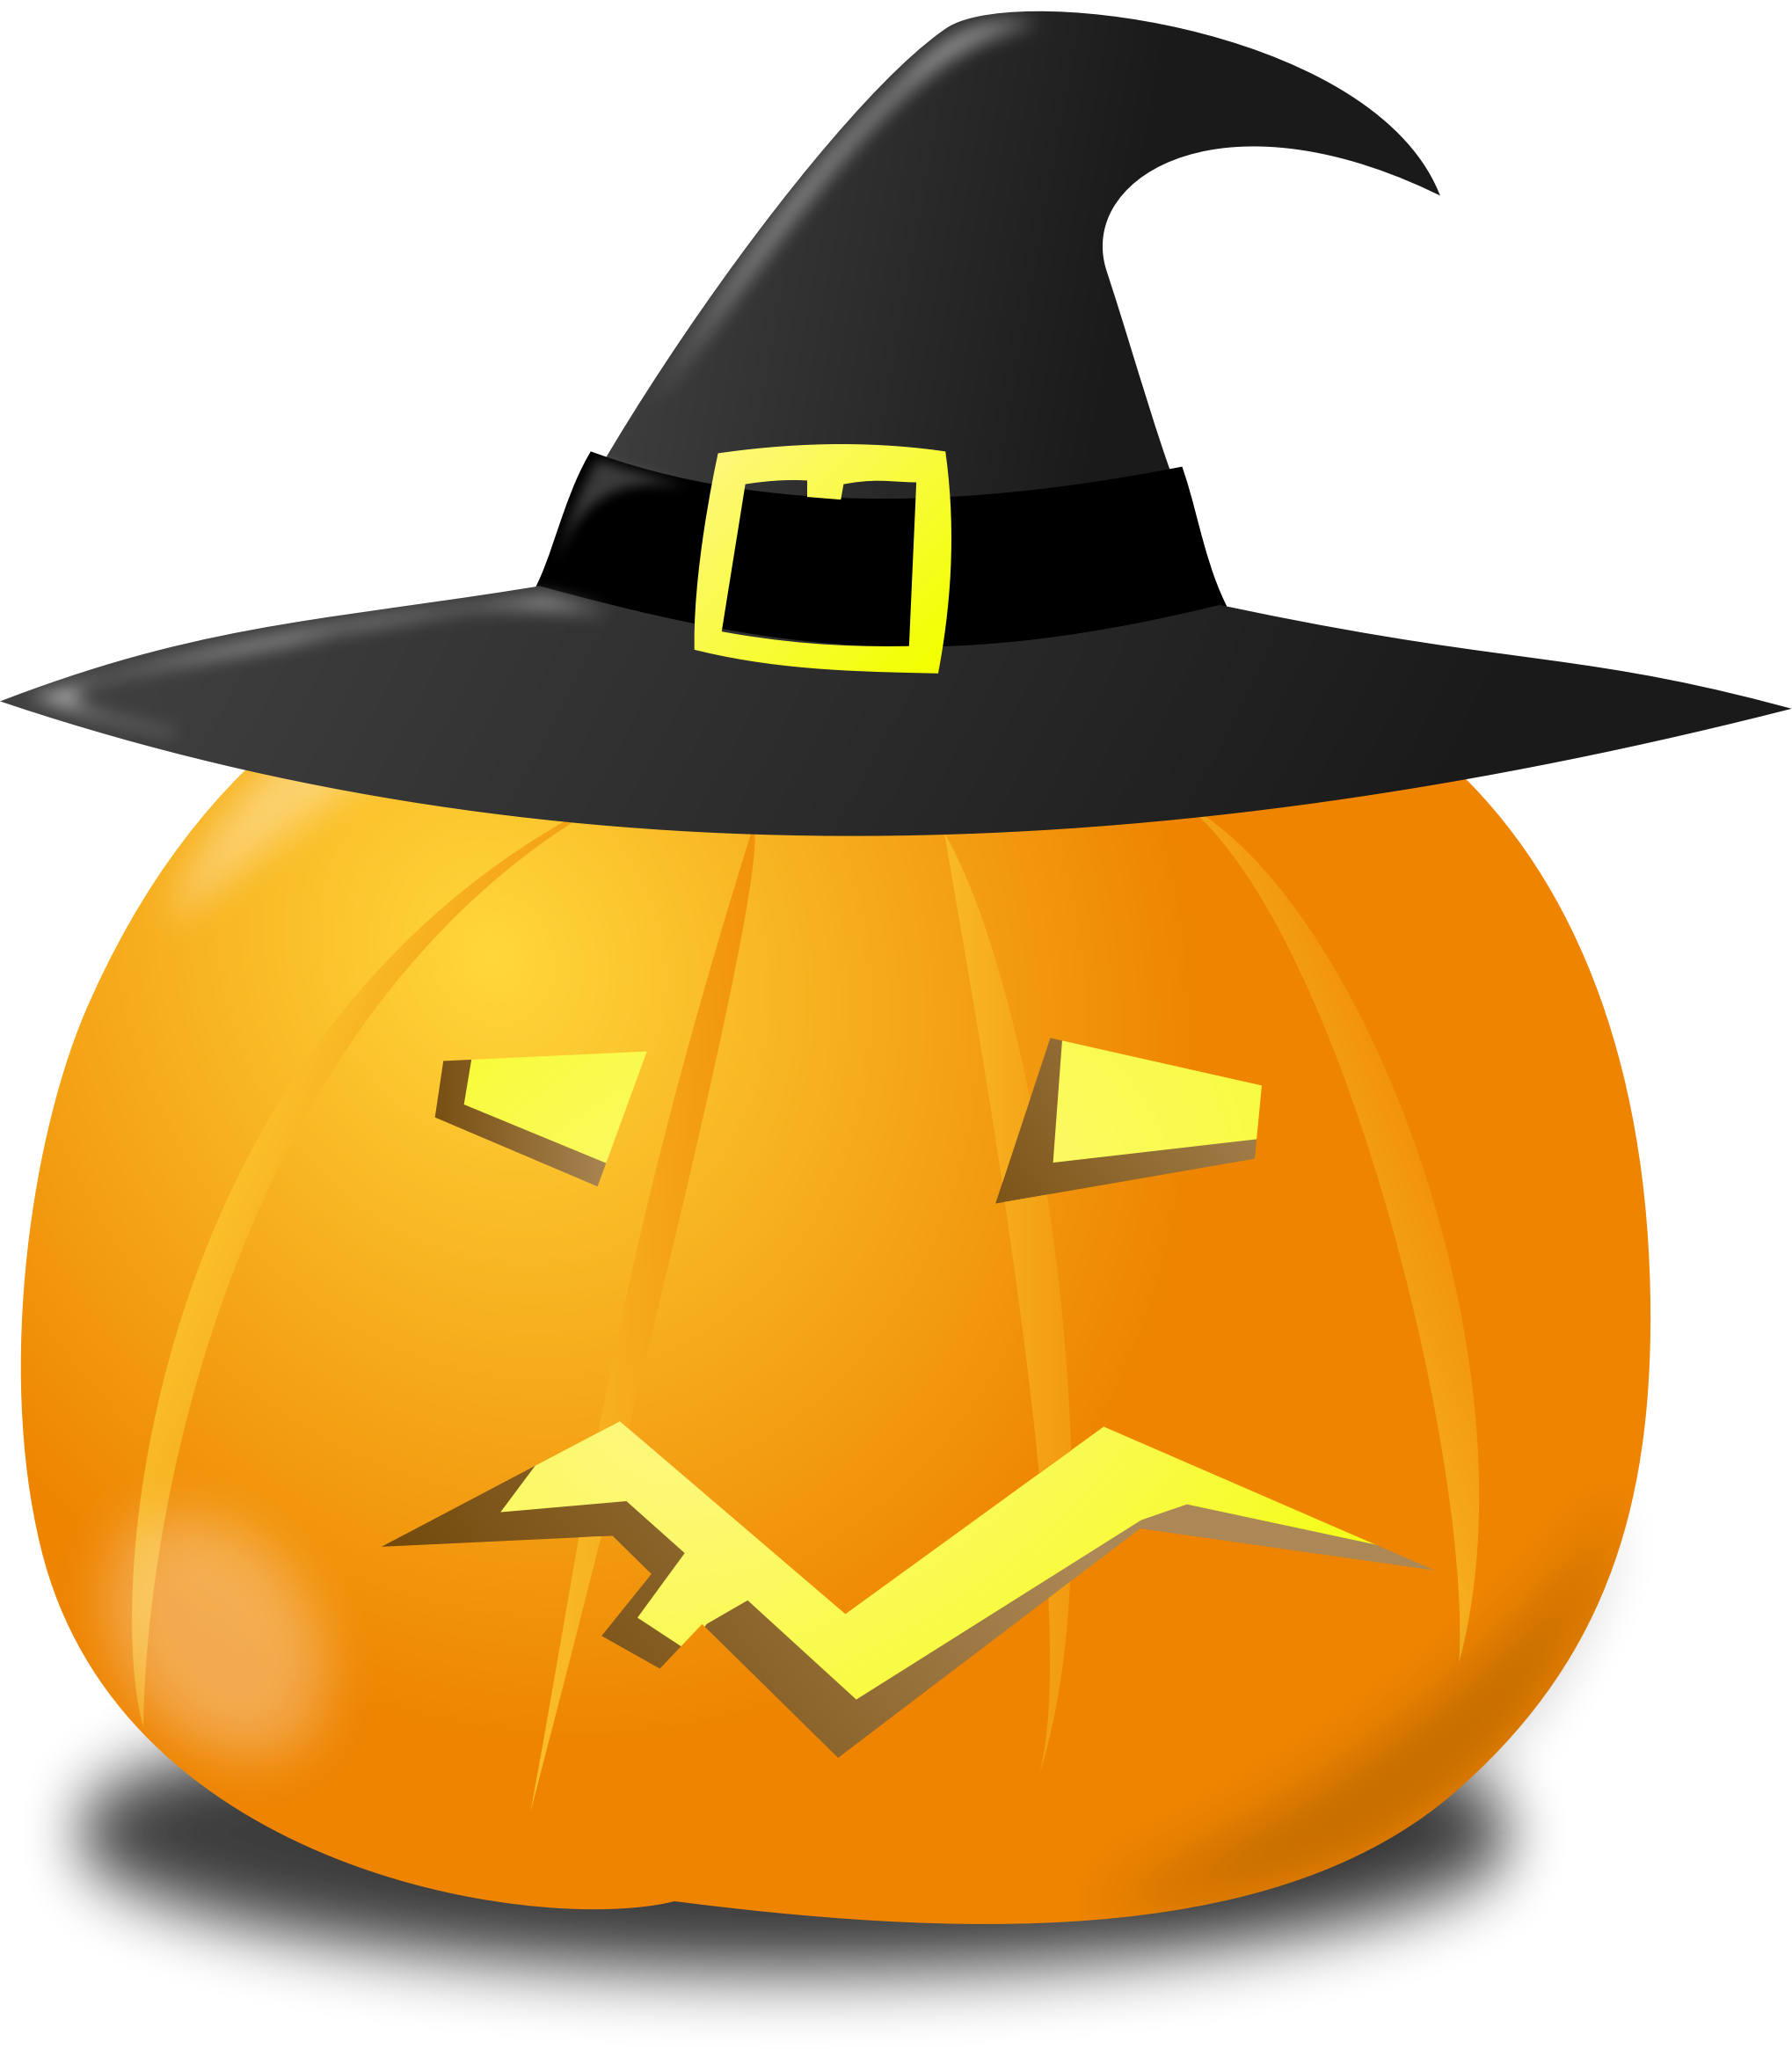 Spooky Halloween Pumpkins messages sticker-0